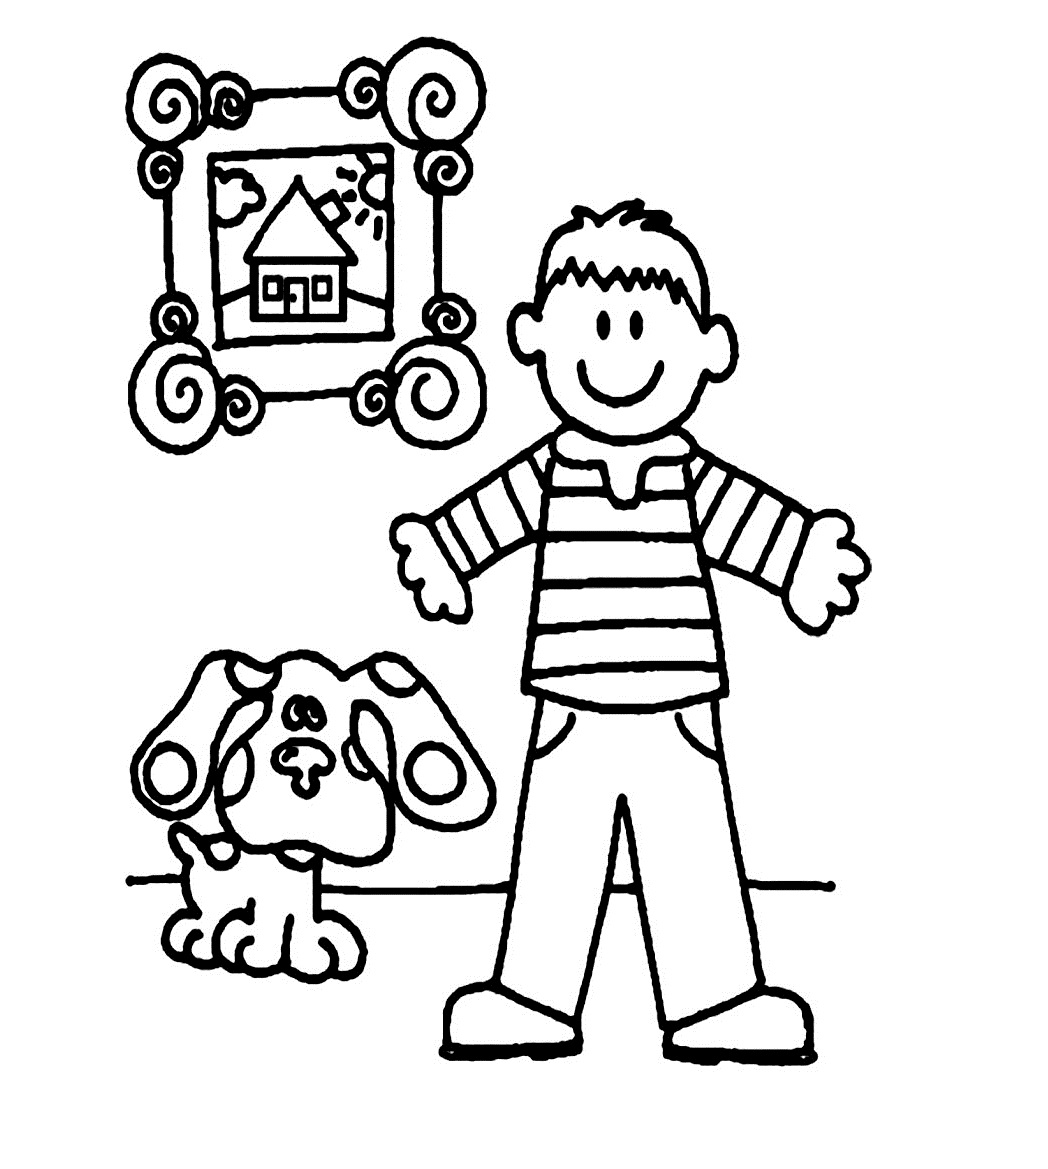 boy coloring page free printable boy coloring pages for kids boy page coloring 1 1